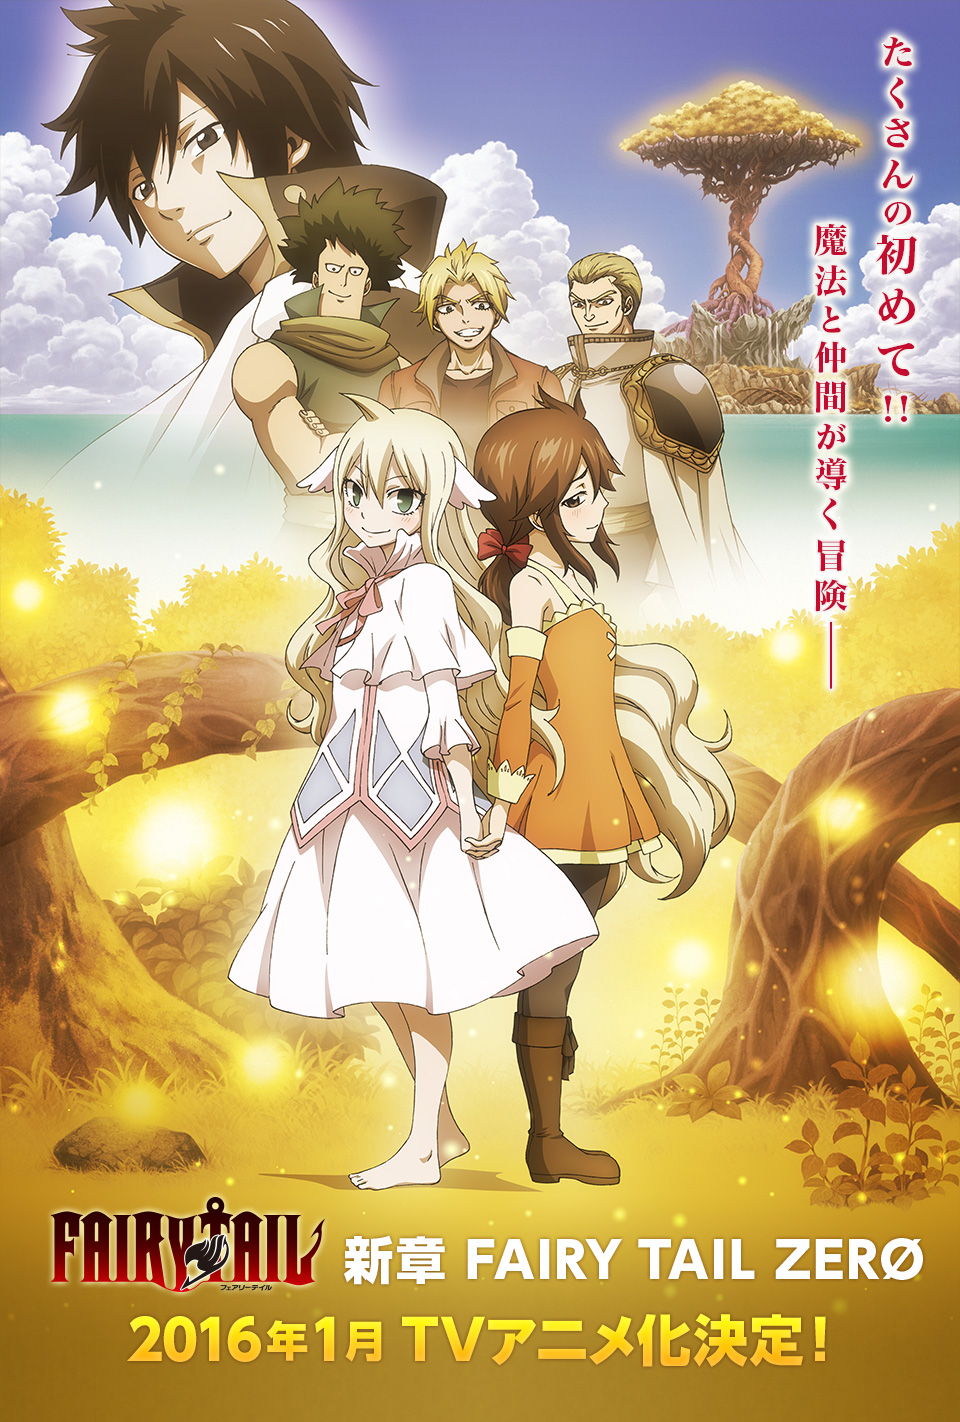 Fairy Tail Zero Anime